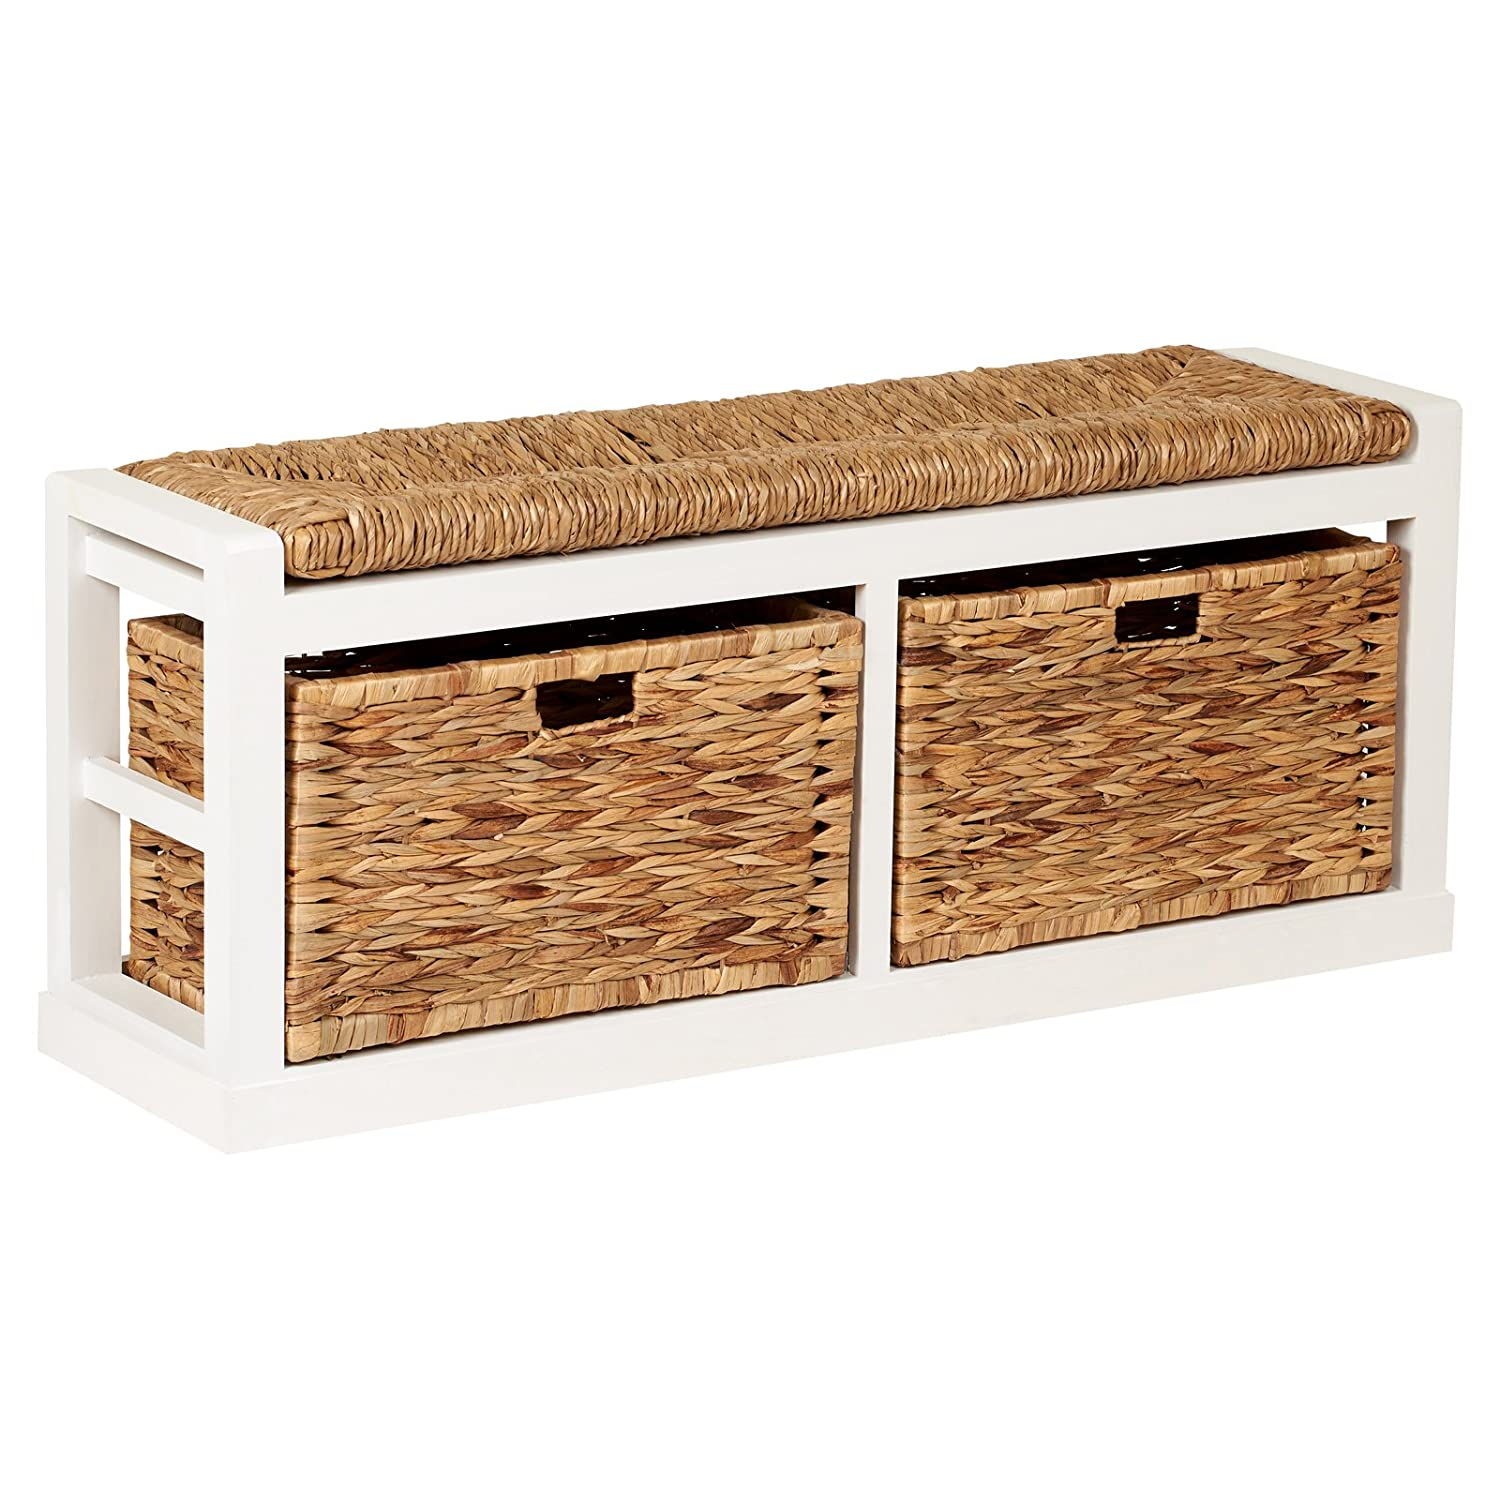 Hartleys Extra Wide 2 Drawer Storage Bench with Wicker Cushion & Baskets